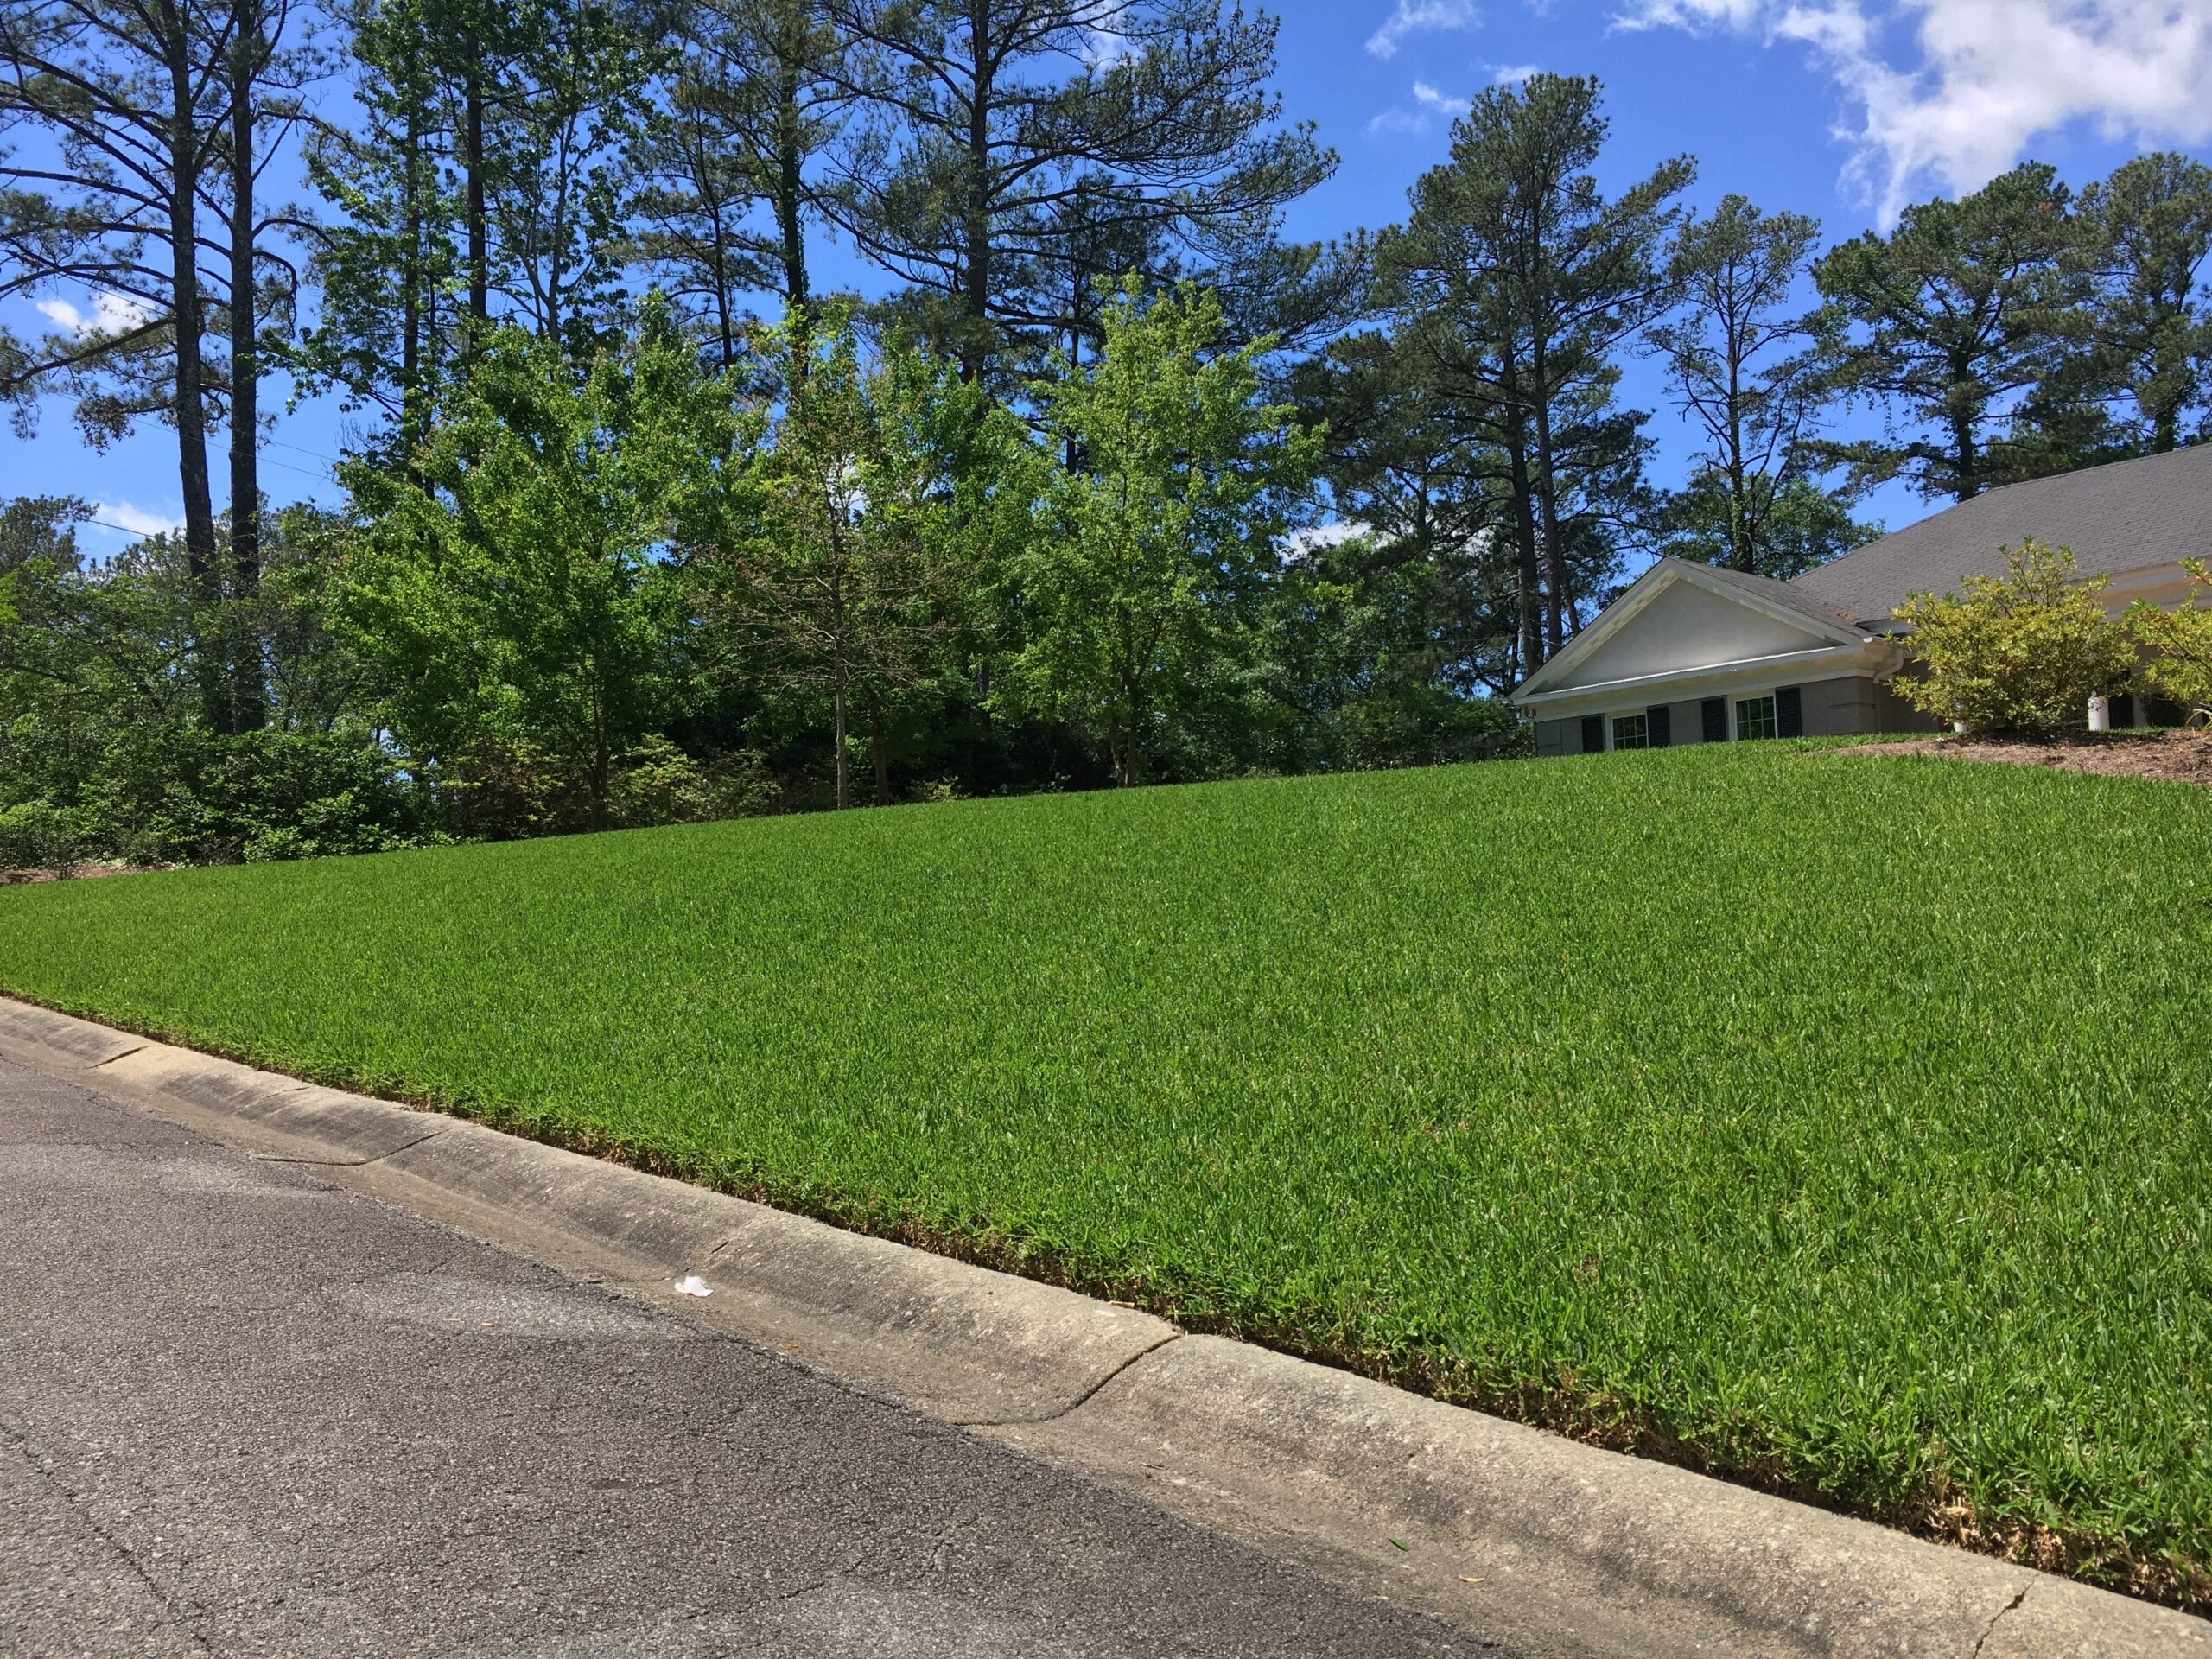 This is lawn in the Macon and Warner Robins area that is maintained by our lawn care service.